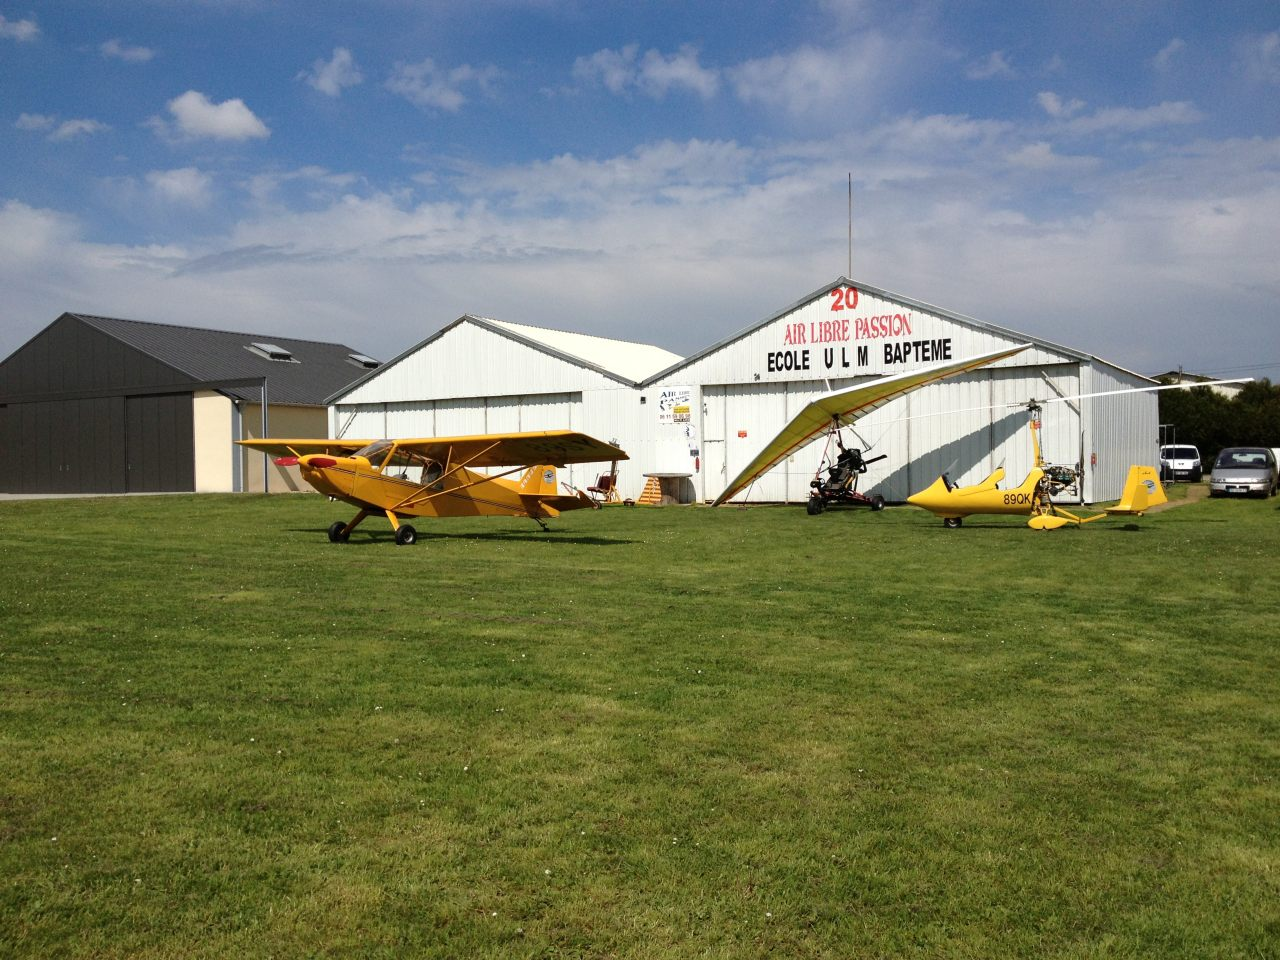 Hangar ULM Air Libre Passion - Bourgogne